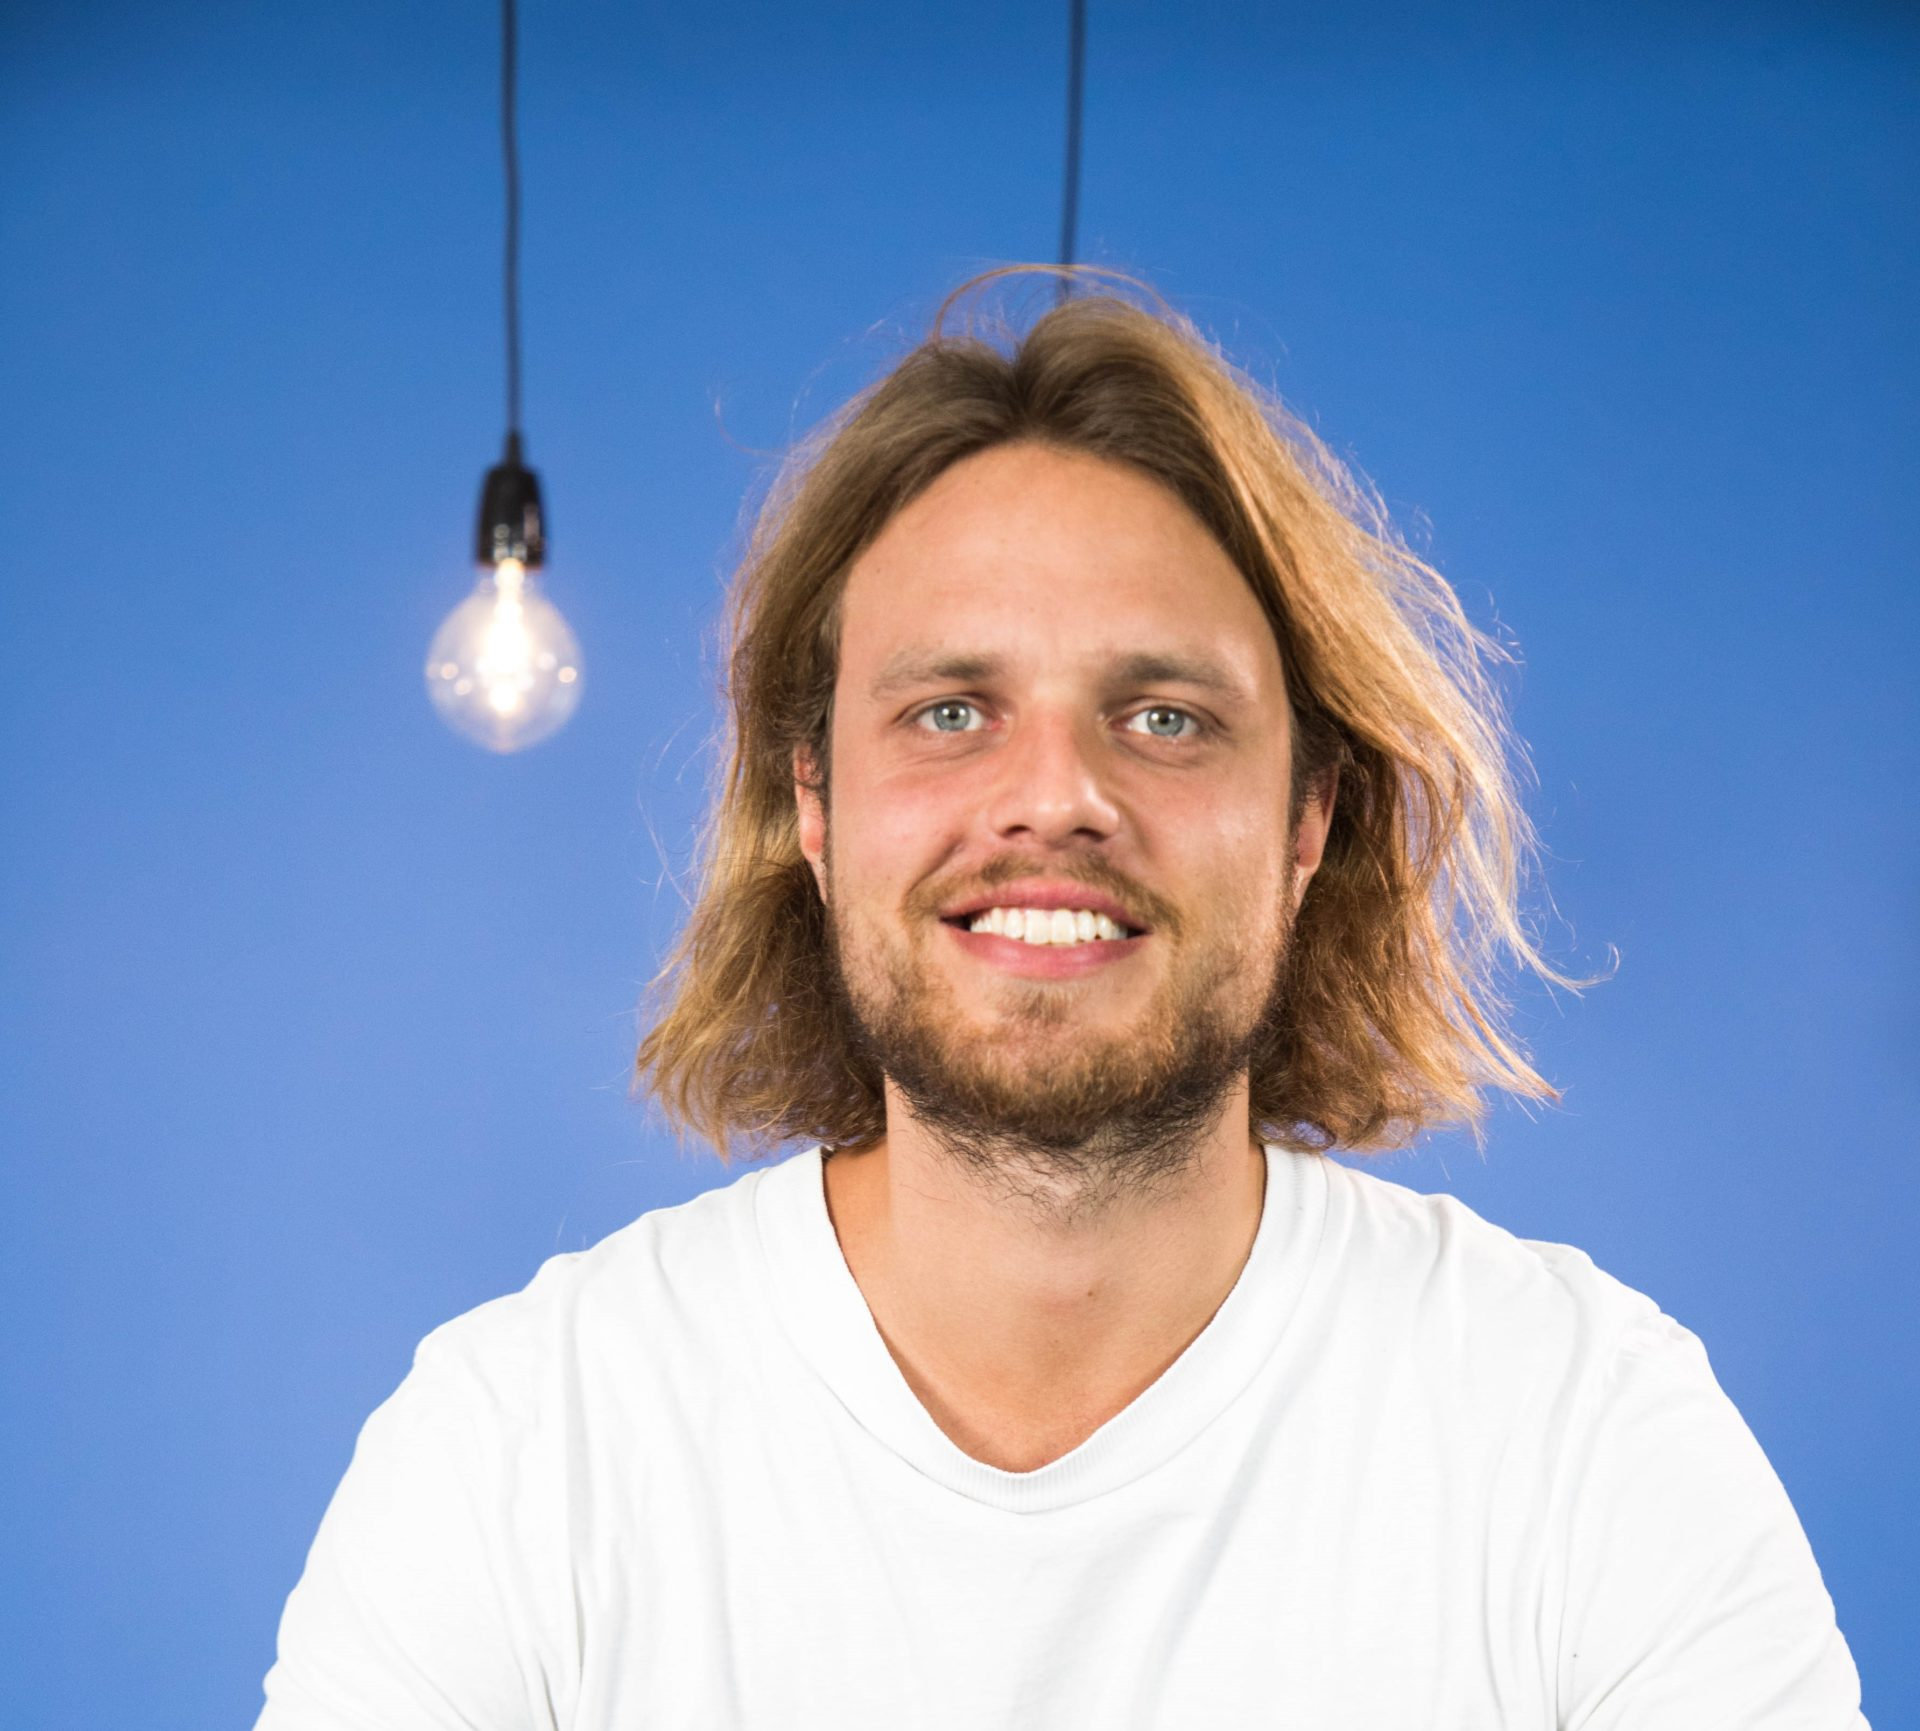 Co.Station Events | Microsoft for Startups is coming to Co.Station with Philipp Laurim